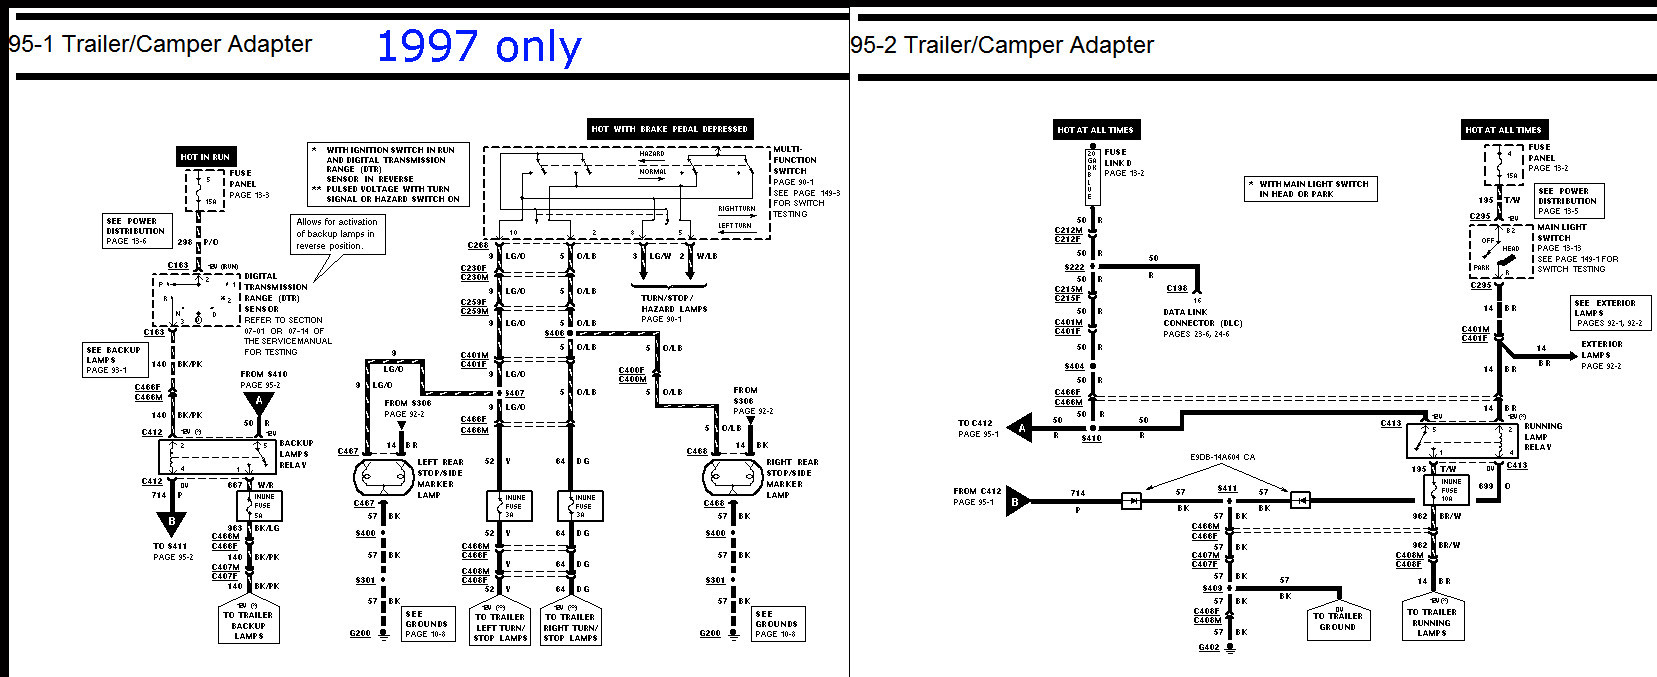 [DIAGRAM] 2001 F350 Trailer Brakes Diagram FULL Version HD